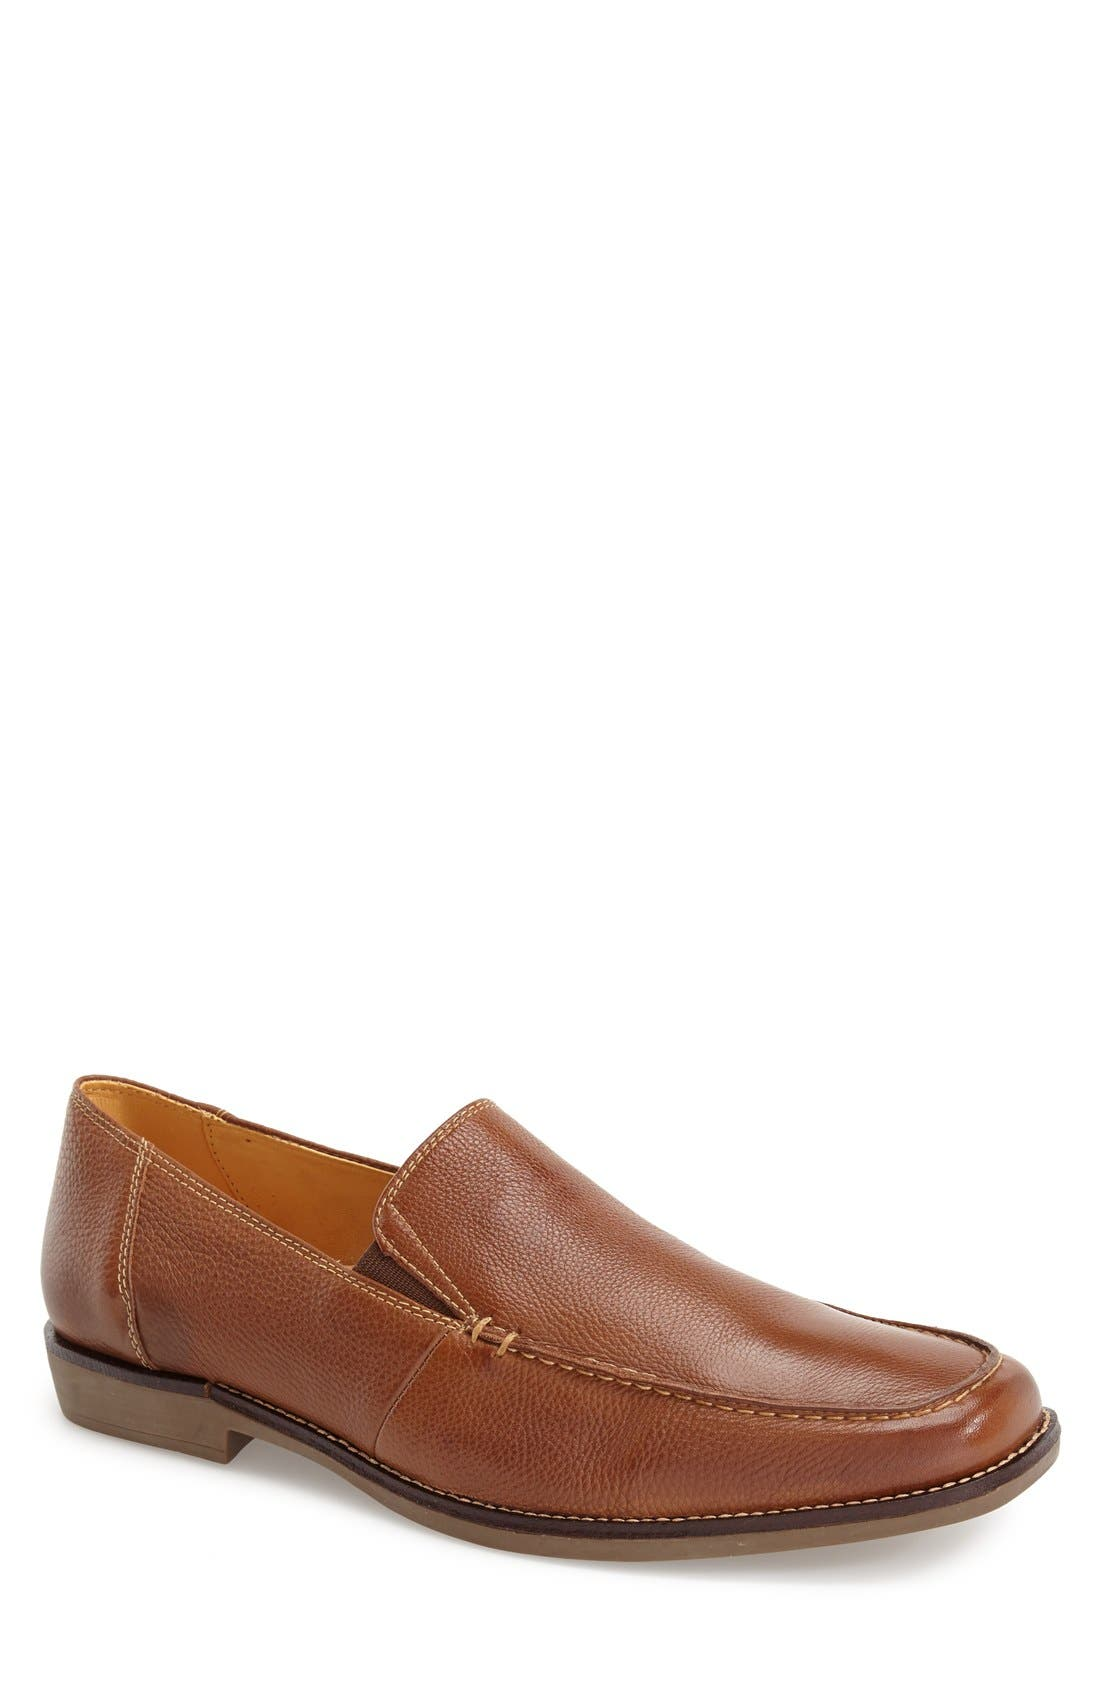 'Easy' Leather Venetian Loafer,                             Main thumbnail 1, color,                             COGNAC